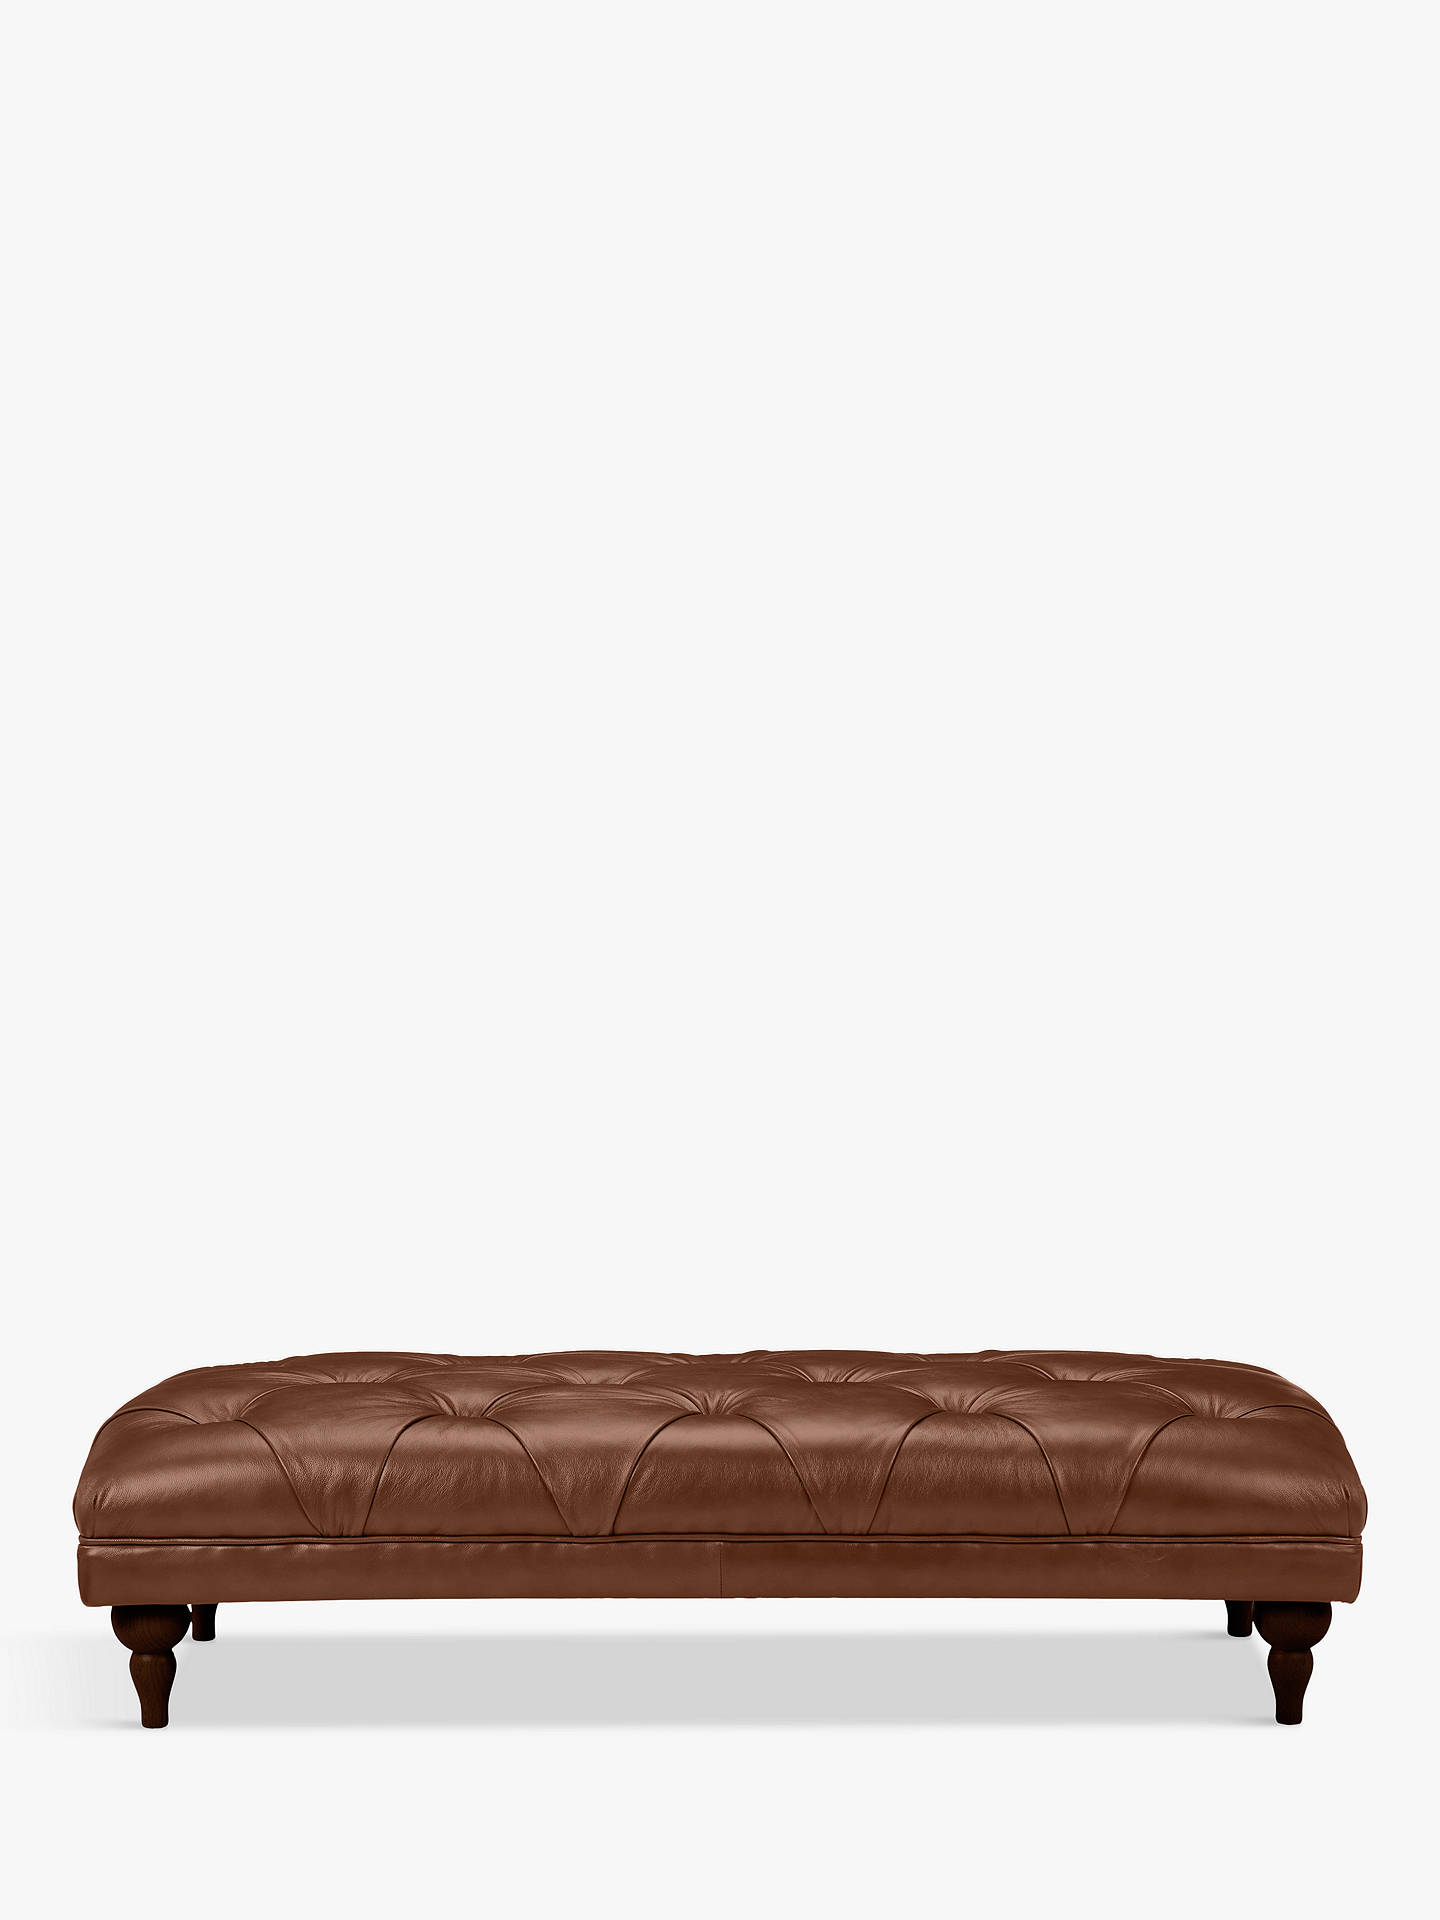 Buy John Lewis & Partners Delia Grand Classic Buttoned Footstool, Dark Leg, Contempo Castanga Online at johnlewis.com